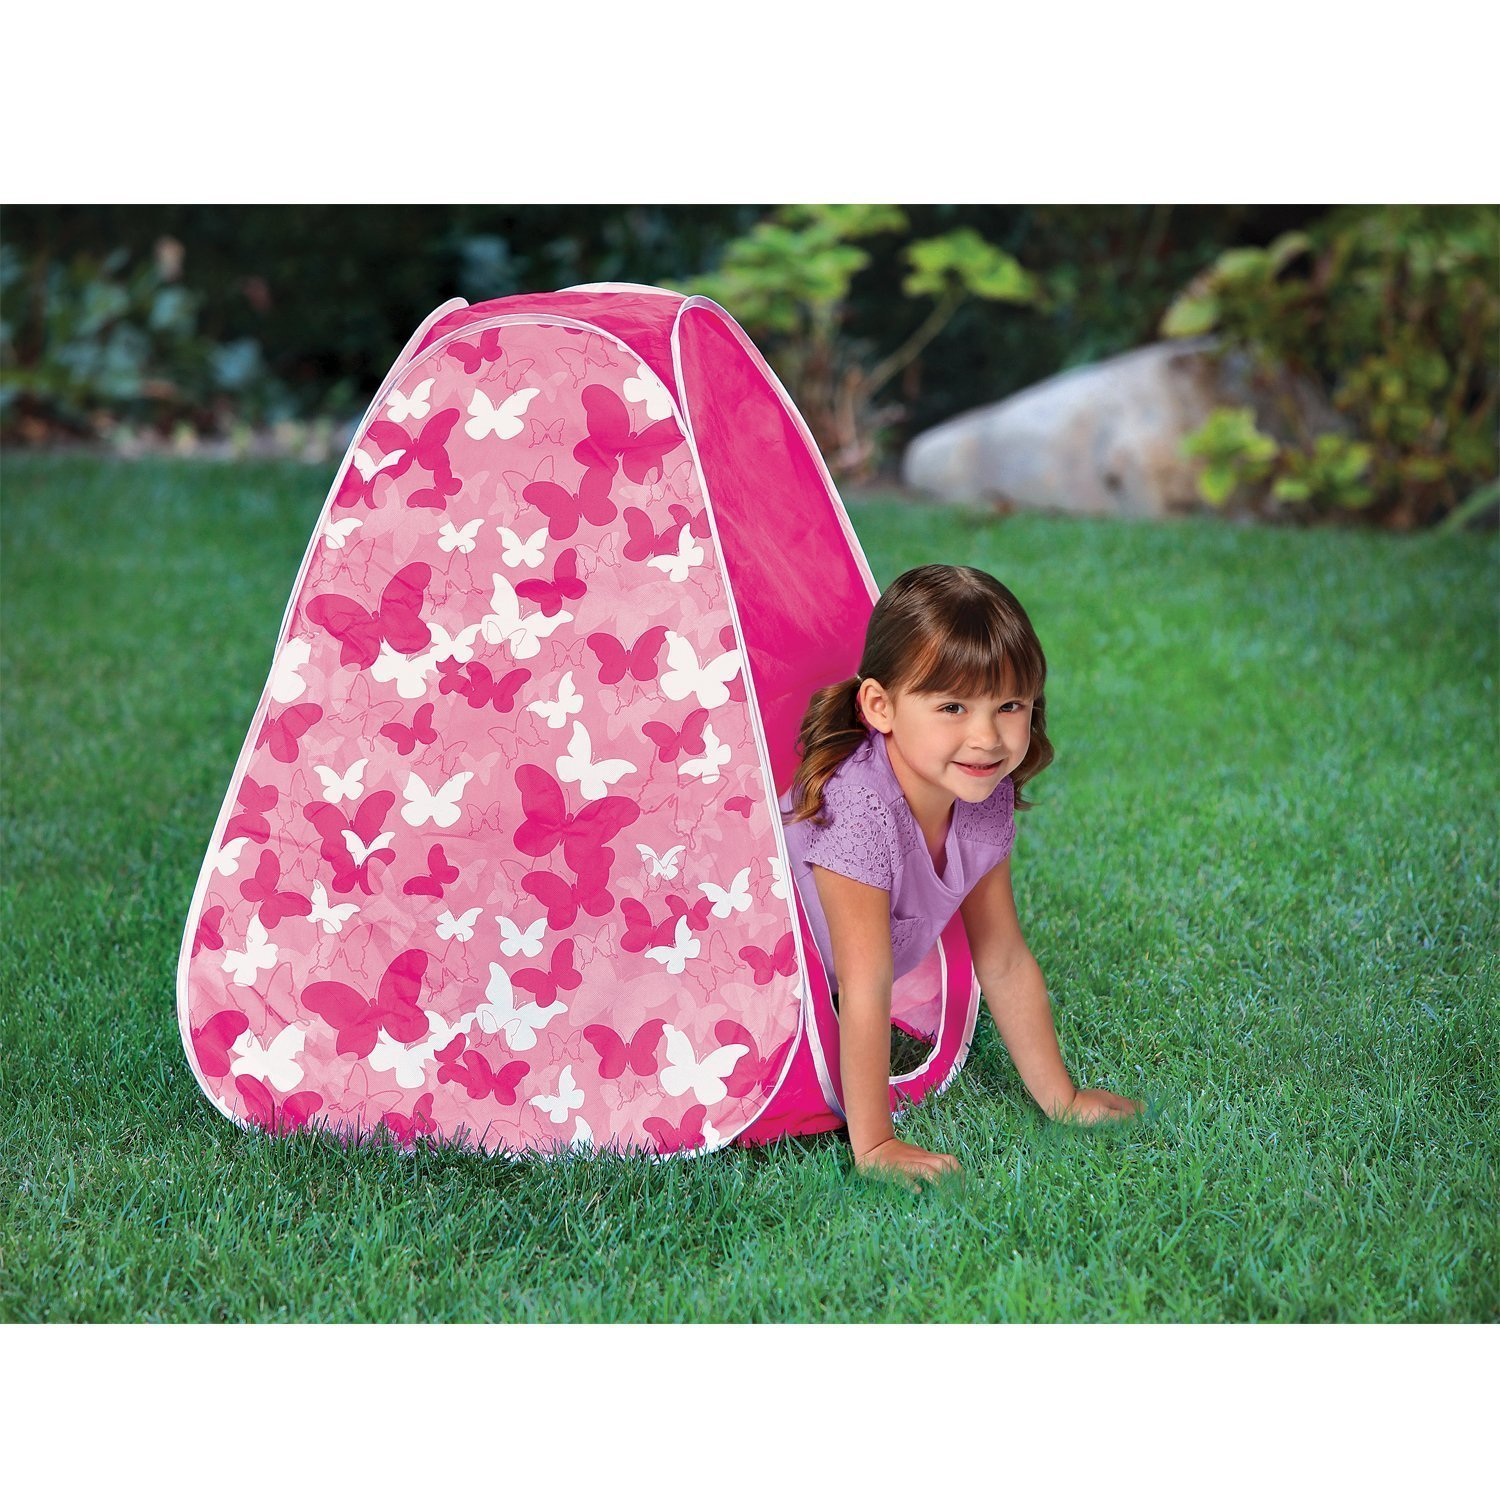 Amazon.com Discovery Kids Pop-up Tent Butterfly and Pink Camo Motiff Personal Reading and Play Space Toys u0026 Games  sc 1 st  Amazon.com & Amazon.com: Discovery Kids Pop-up Tent Butterfly and Pink Camo ...